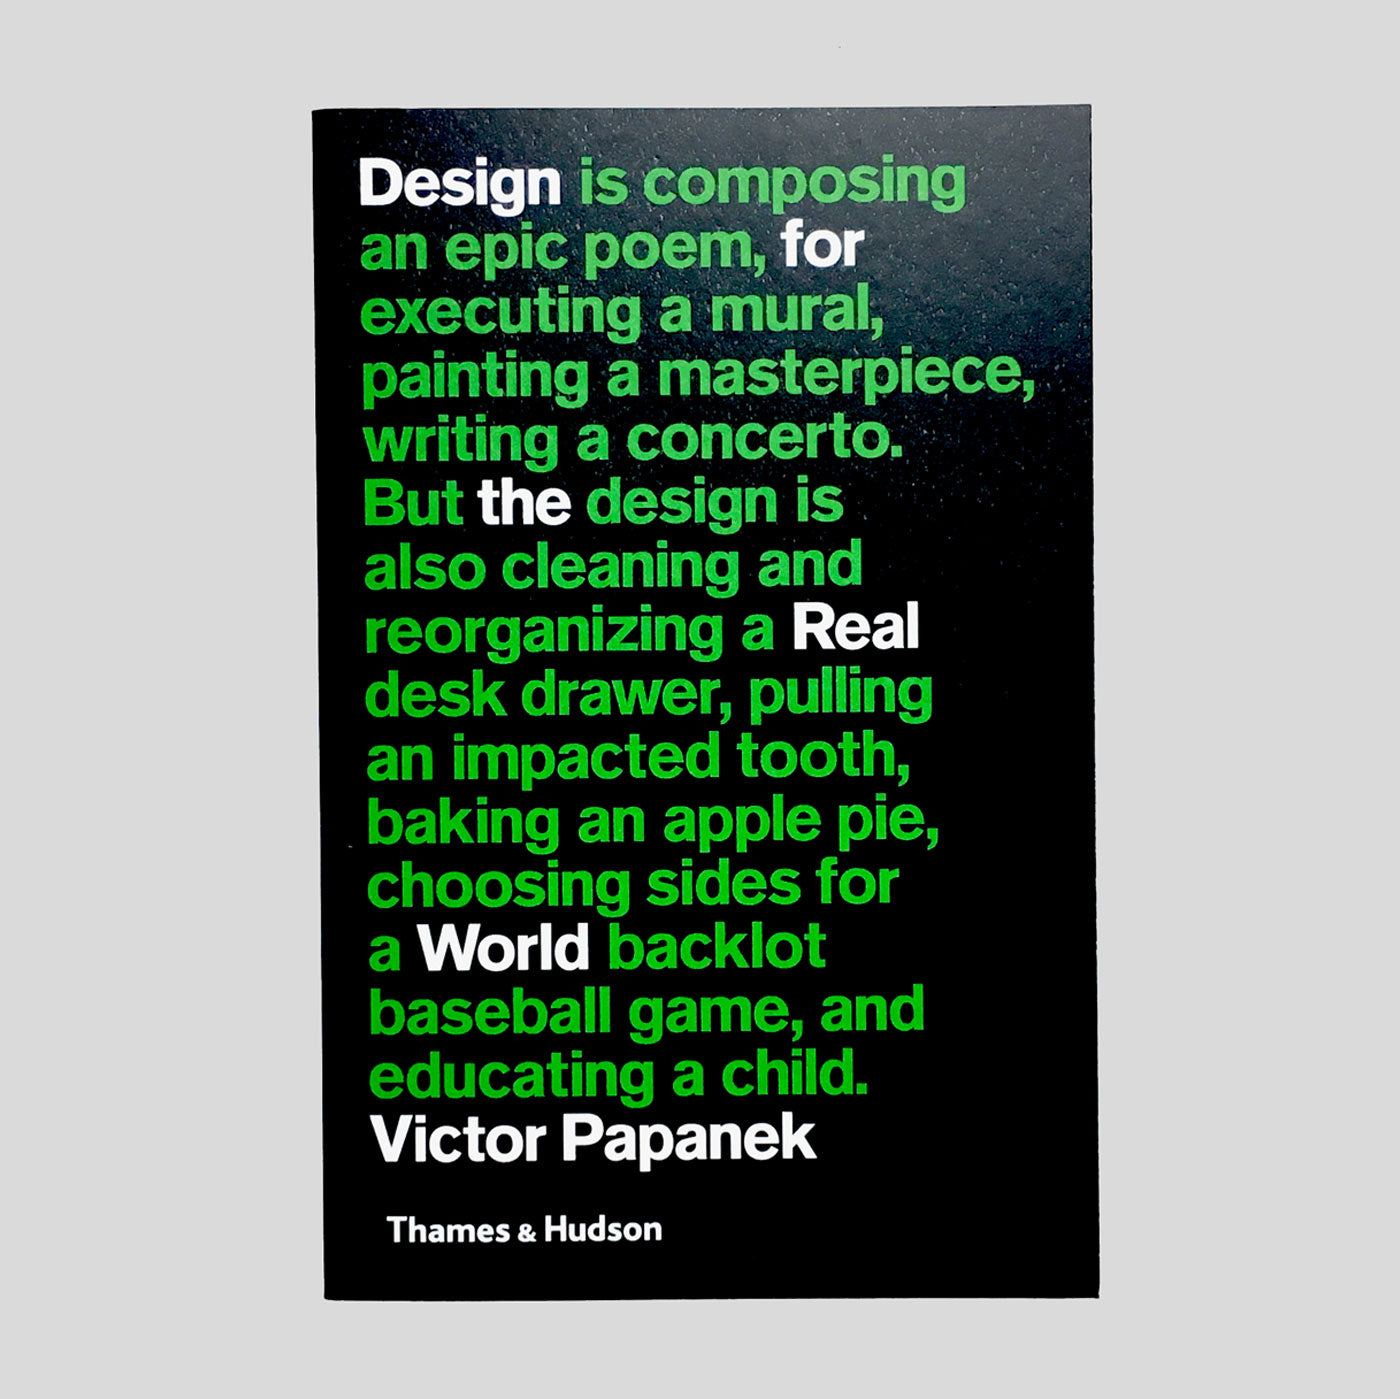 Design For The Real World by Victor Papanek